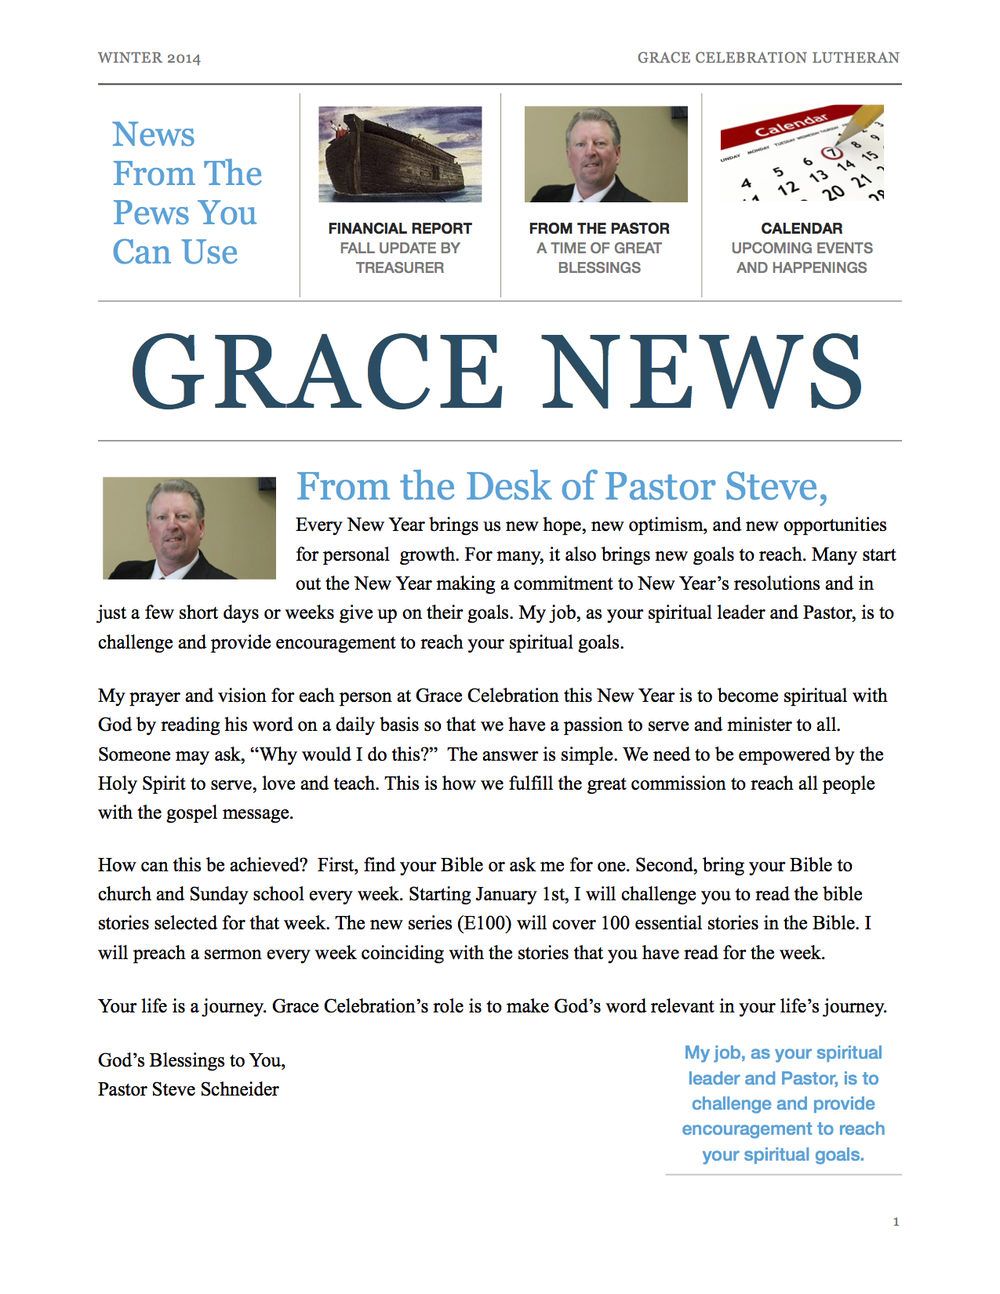 Grace News - Winter Issue